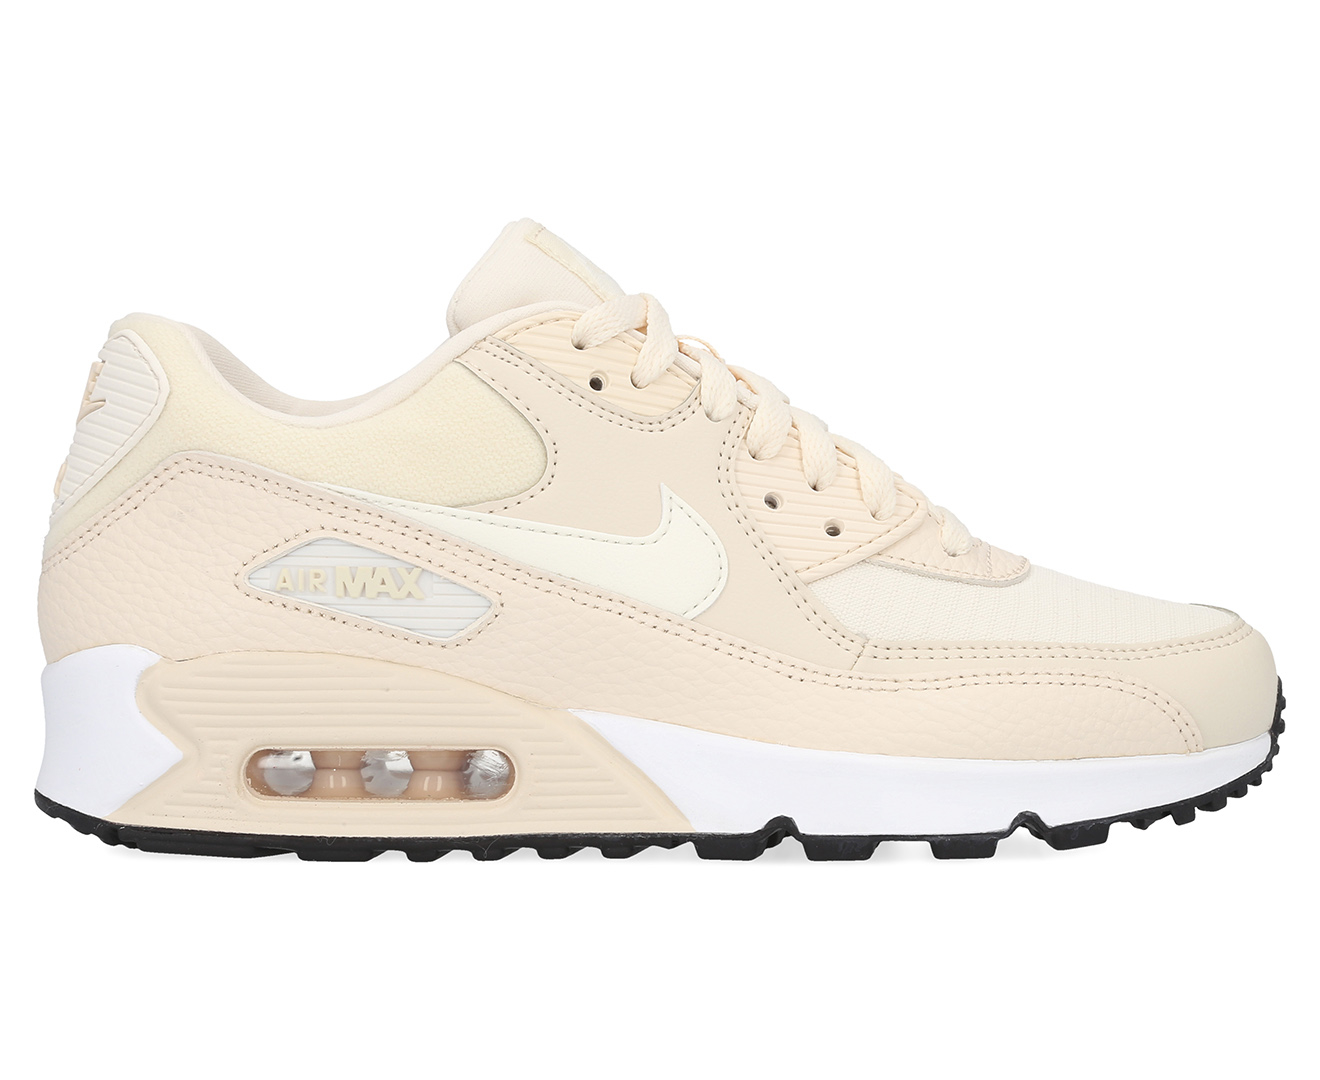 Details about Nike air max 90 Women's Sneaker Beige 325213 213 Leisure Shoes Sneakers New